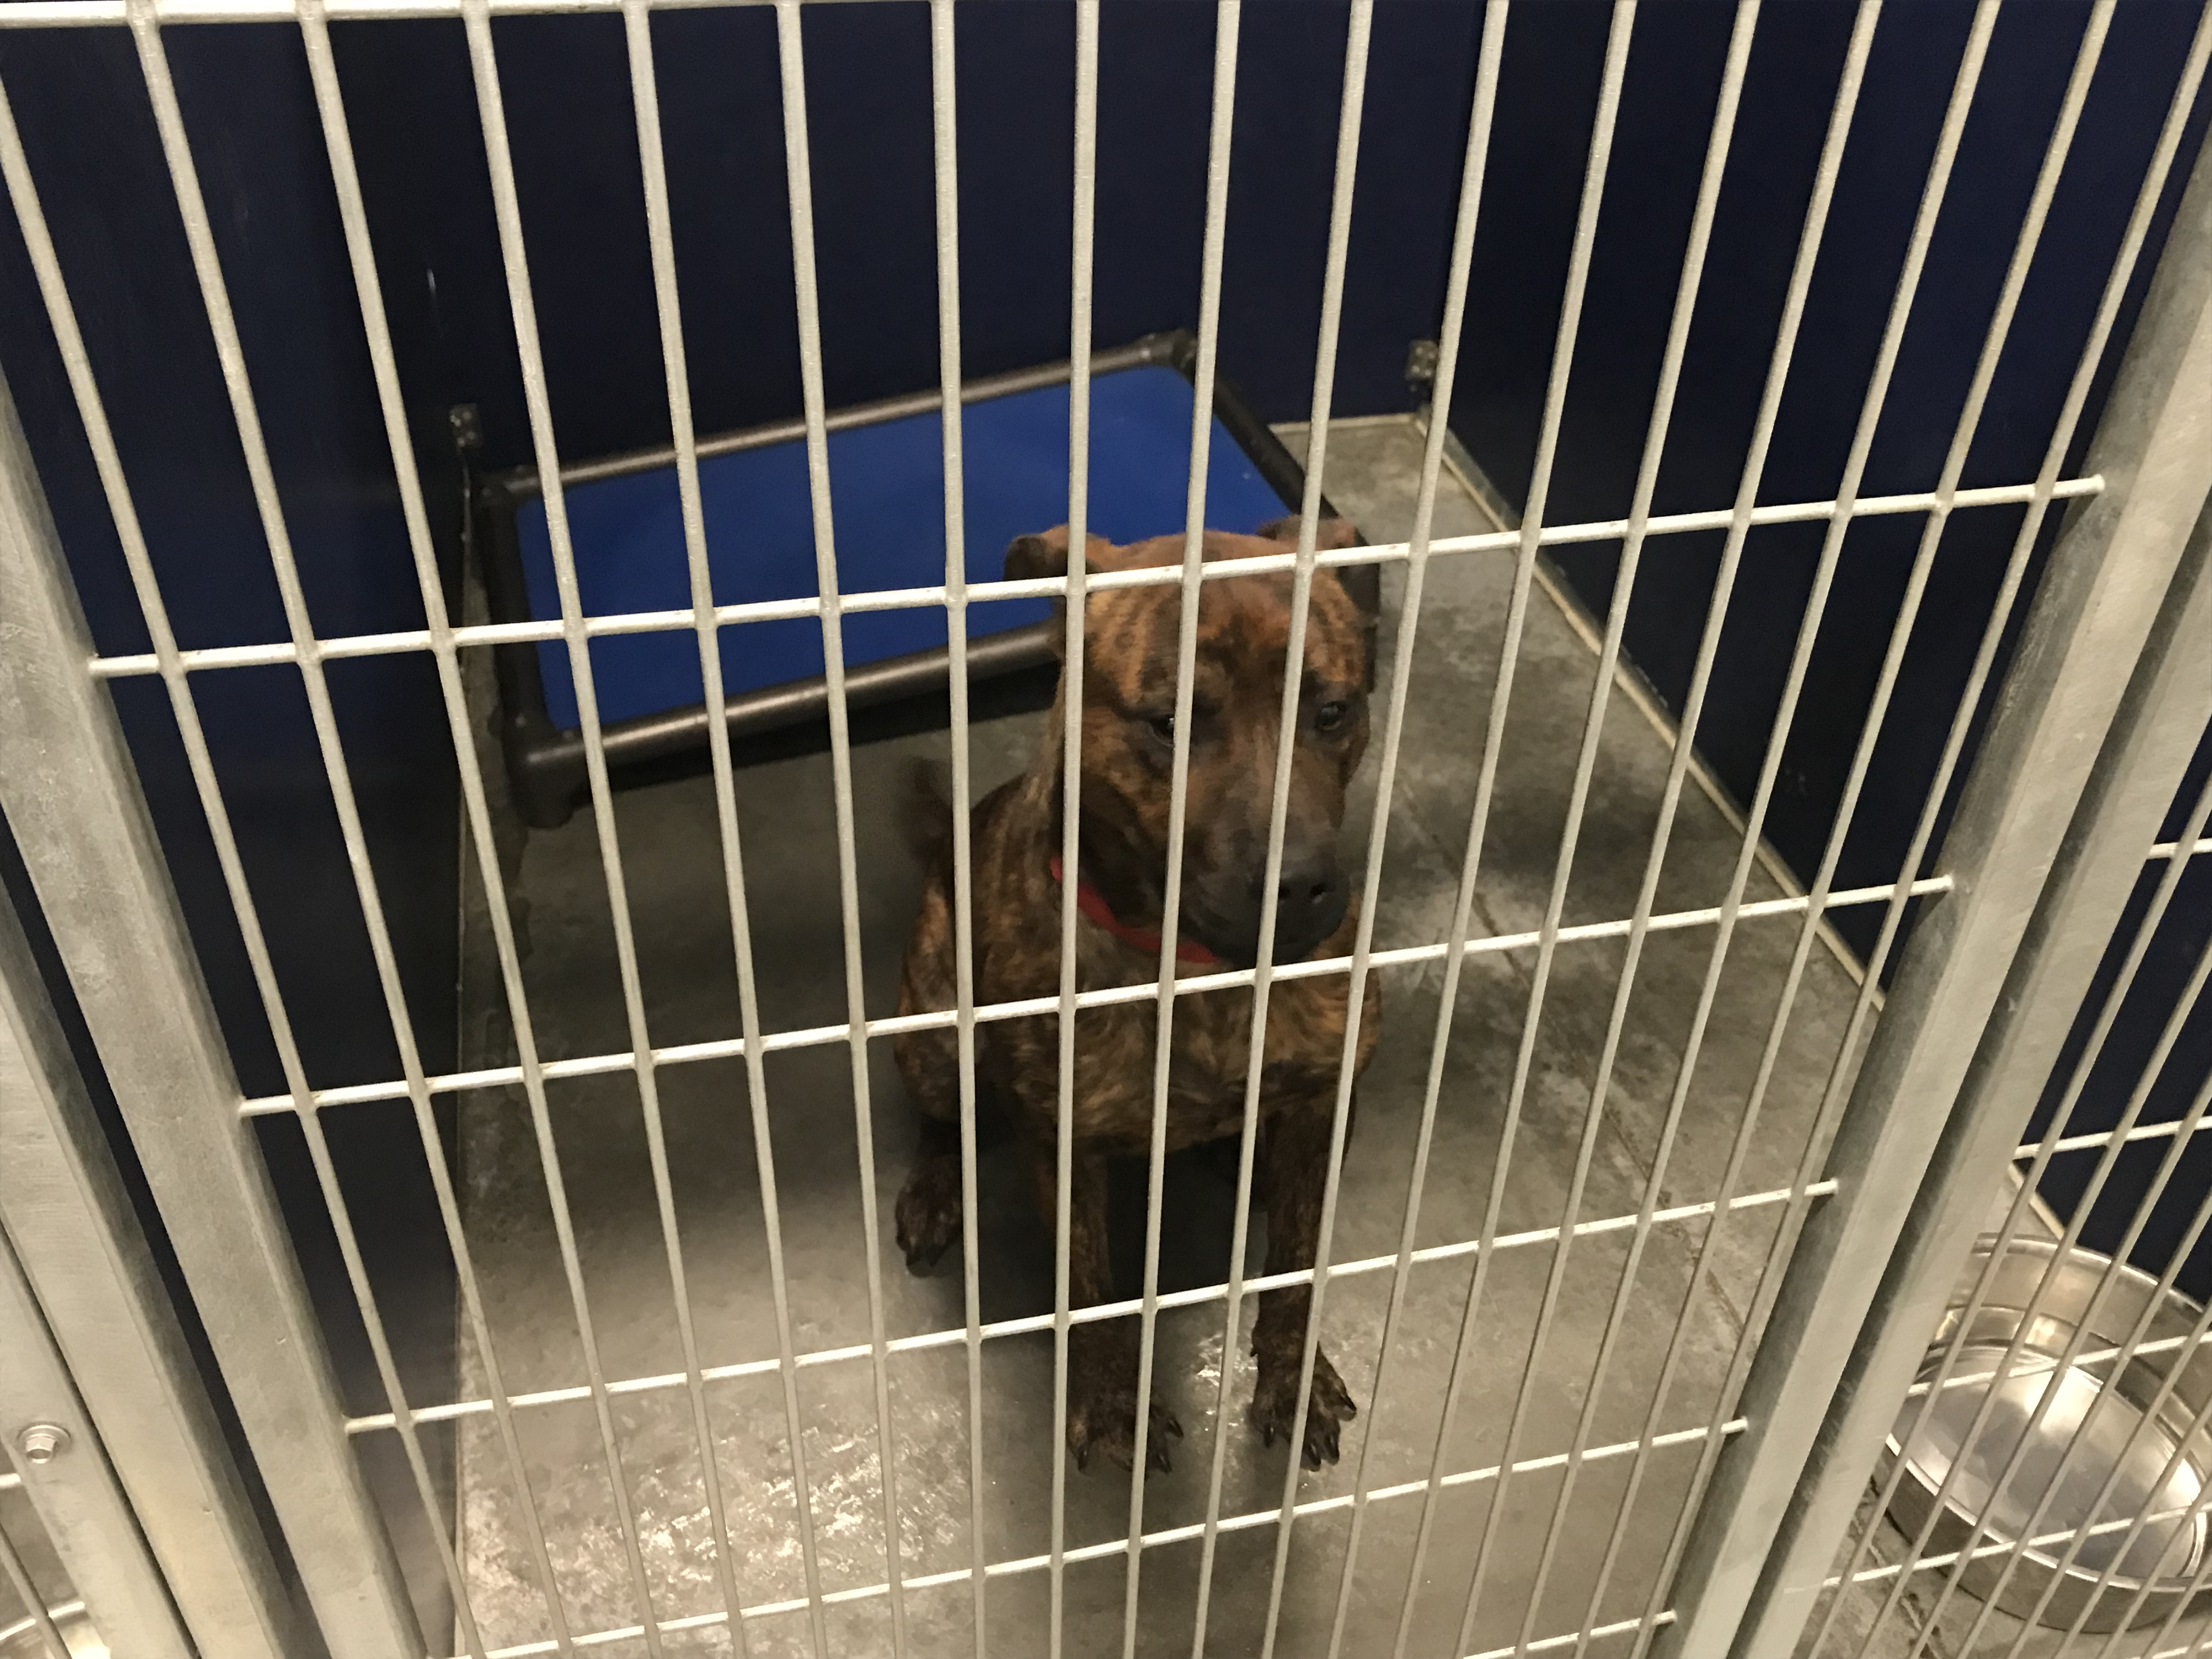 <div class='meta'><div class='origin-logo' data-origin='WTVD'></div><span class='caption-text' data-credit=''>These dogs are available for adoption at the Vance County Animal Shelter.</span></div>